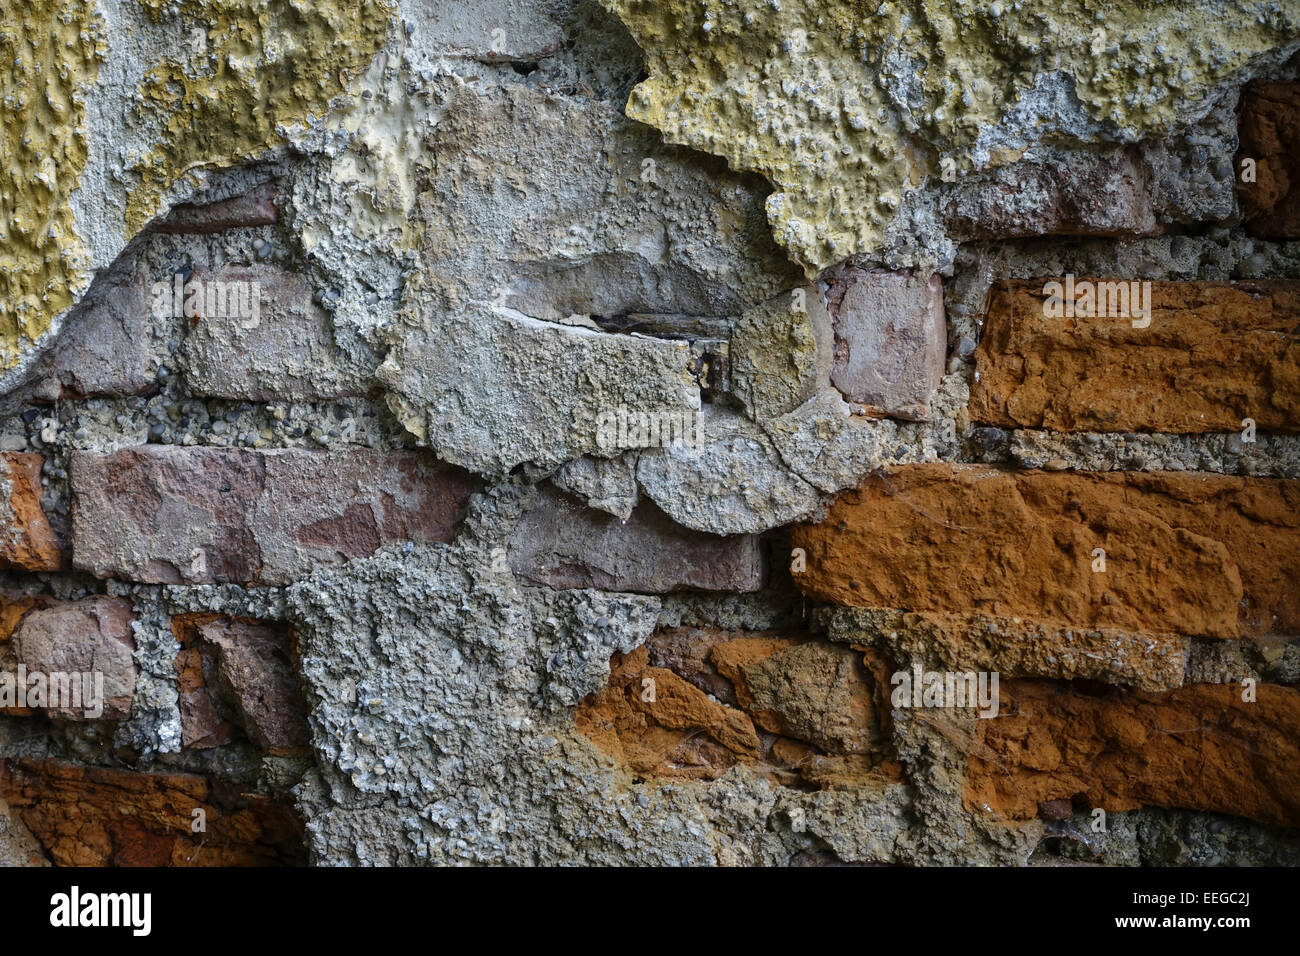 Alte Ziegelmauer an einem heruntergekommenen Haus, Hintergrund, Old brick wall in a rundown house, background, old, - Stock Image